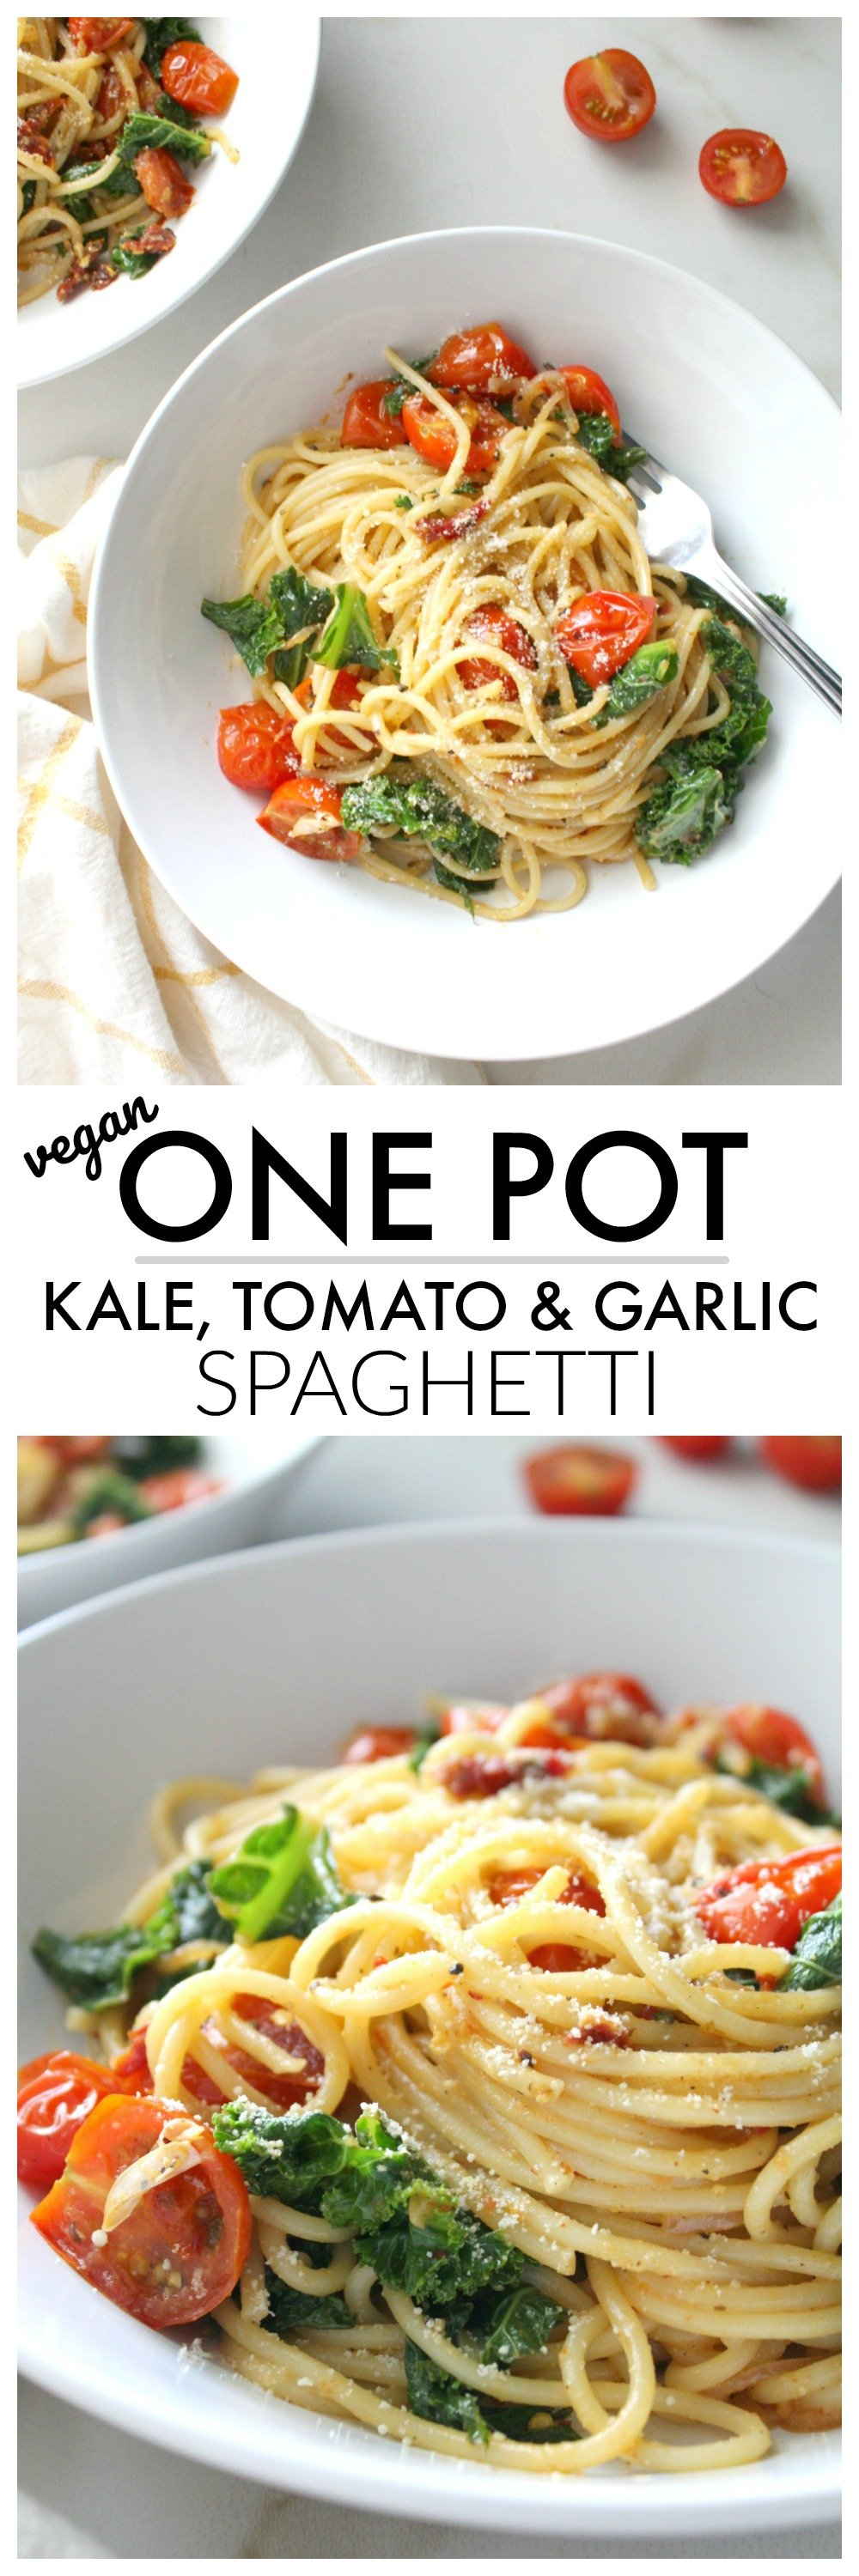 Keep dinner simple and delicious with thisOne Pot Kale, Tomato & Garlic Spaghetti. A simple vegan pasta dish that is packed full of veggies and bright flavors   ThisSavoryVegan.com #thissavoryvegan #veganpasta #plantbased